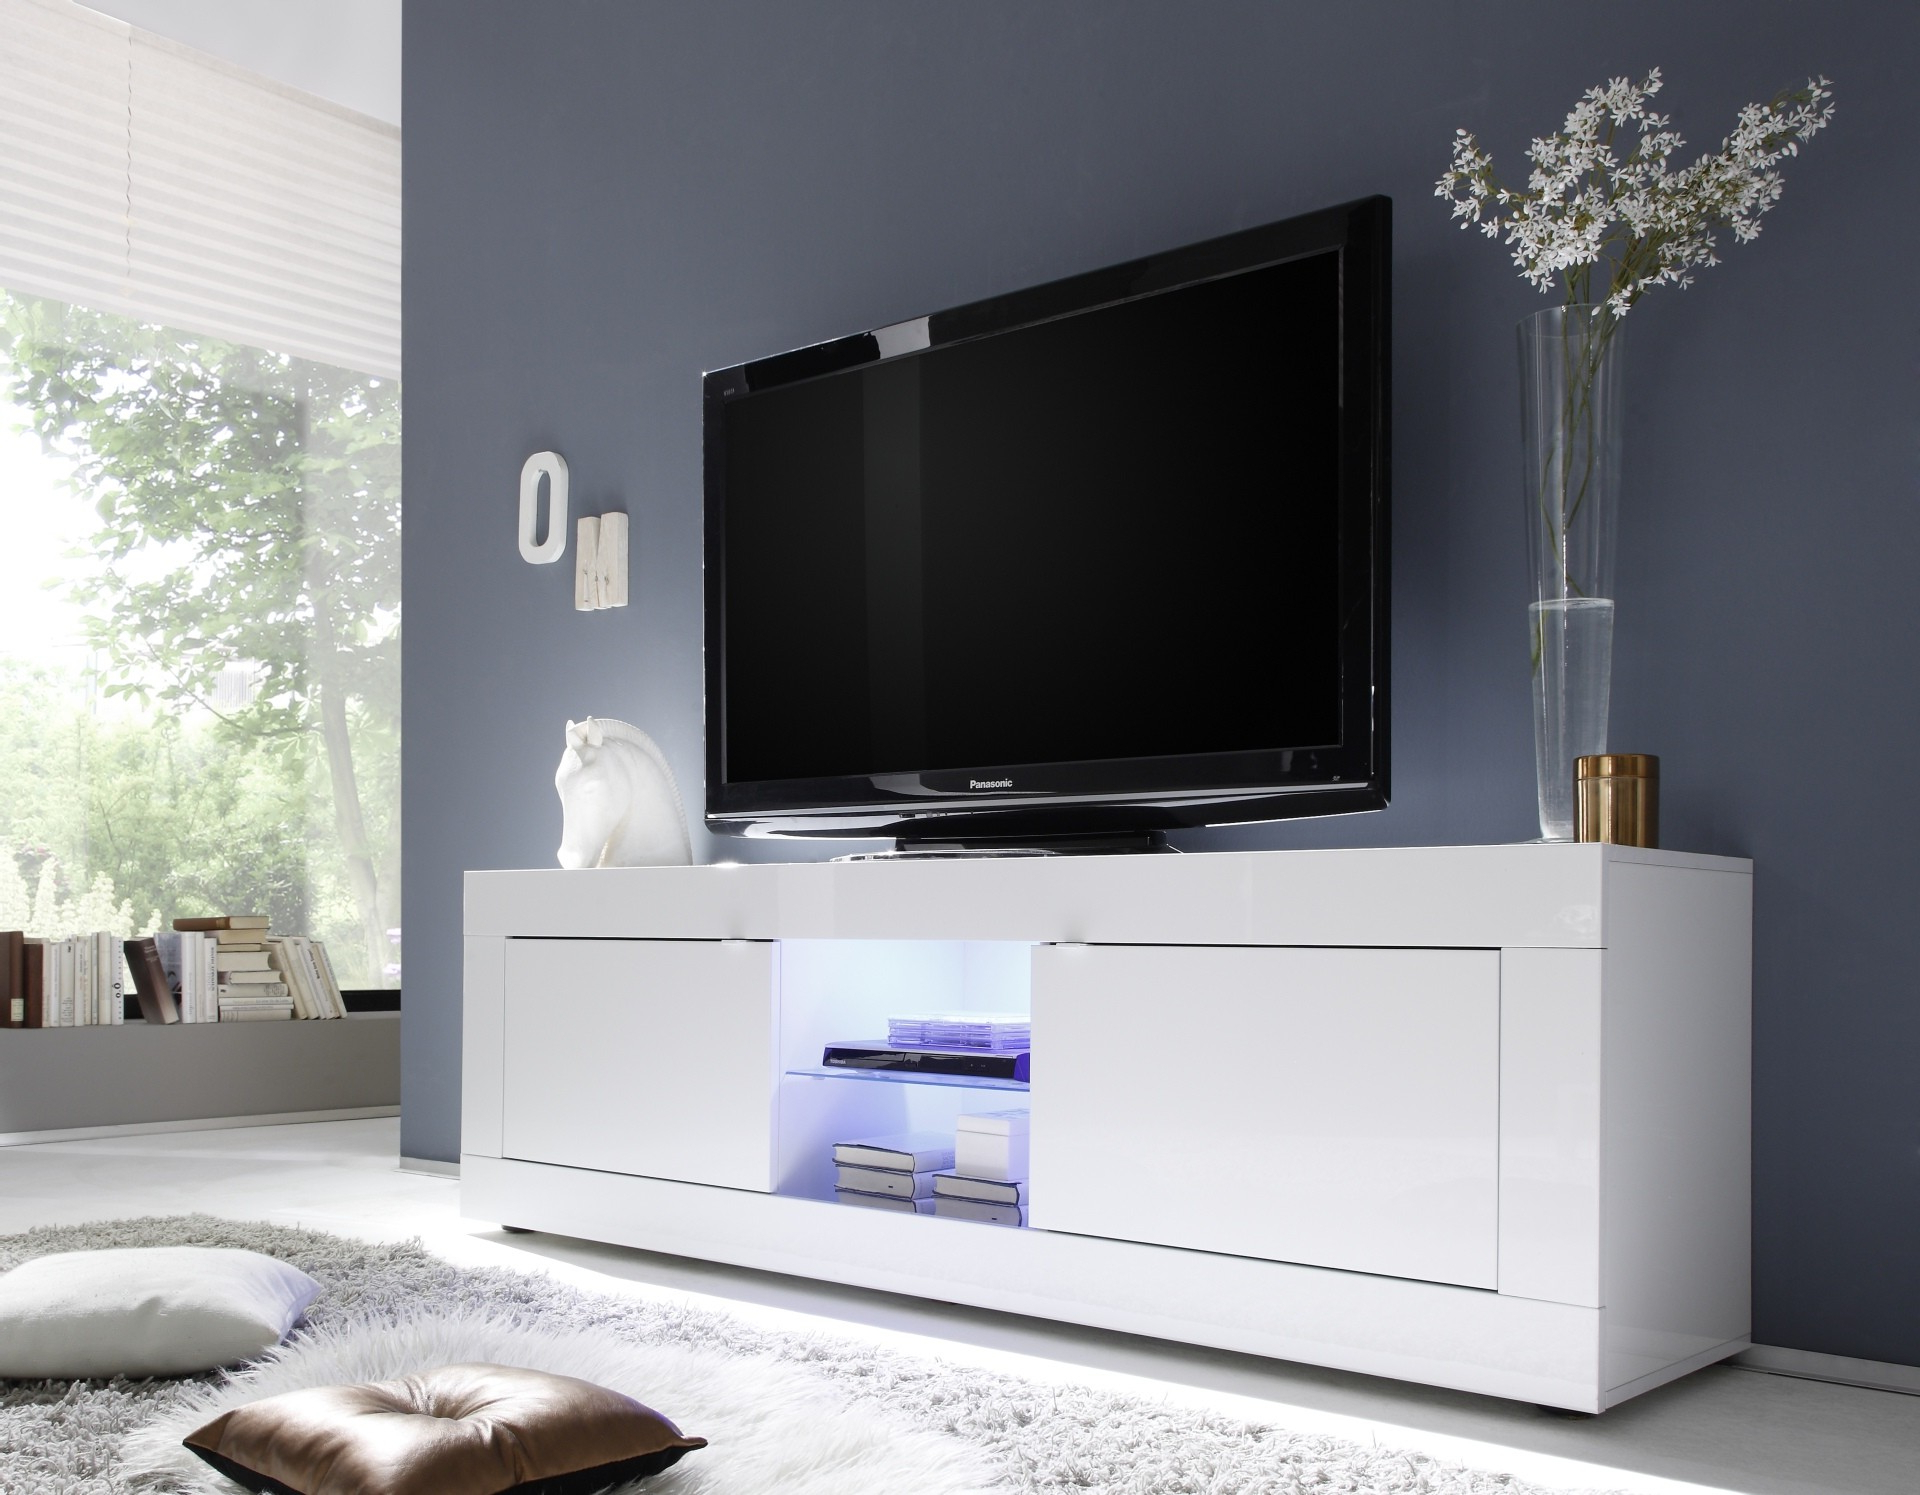 White High Gloss Tv Stands Throughout Favorite White High Gloss Tv Units Modern Entertainment Center Ikea Home (View 17 of 20)